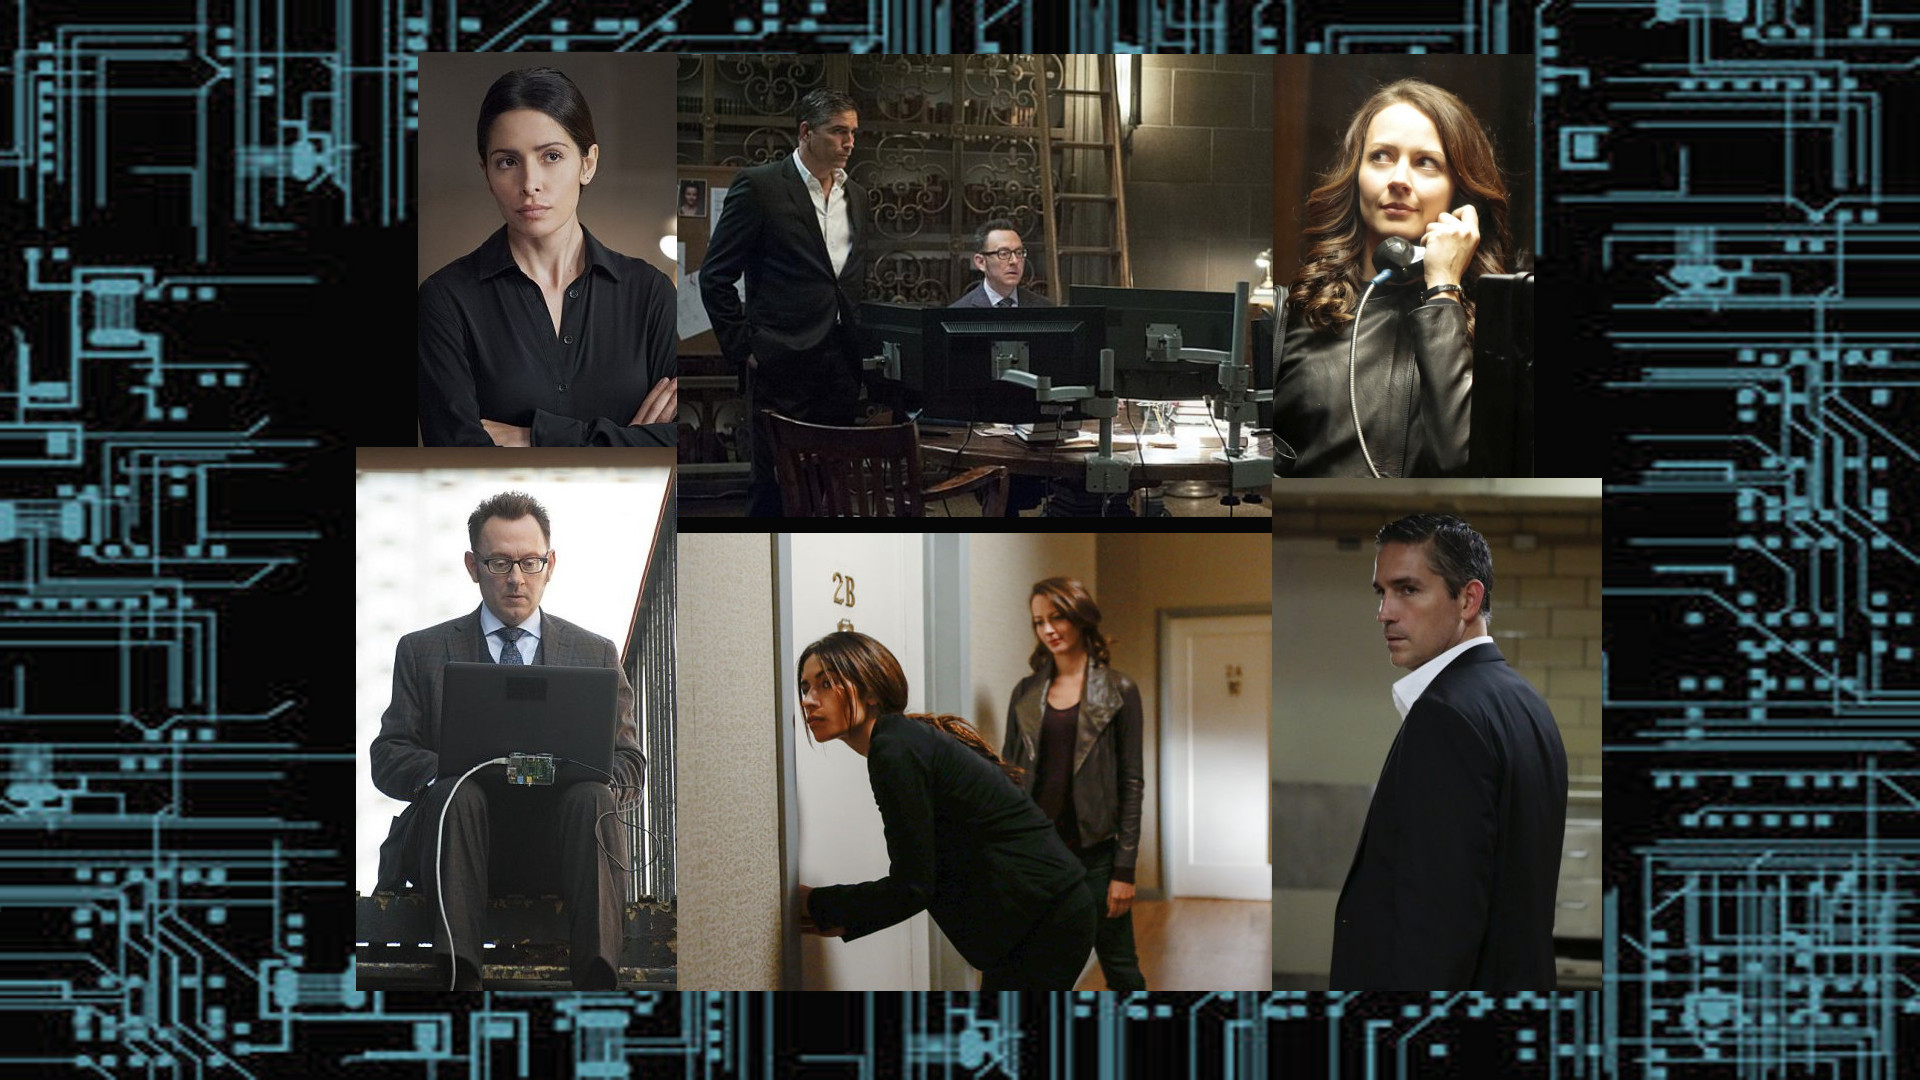 Person of Interest Wallpaper (75+ images)